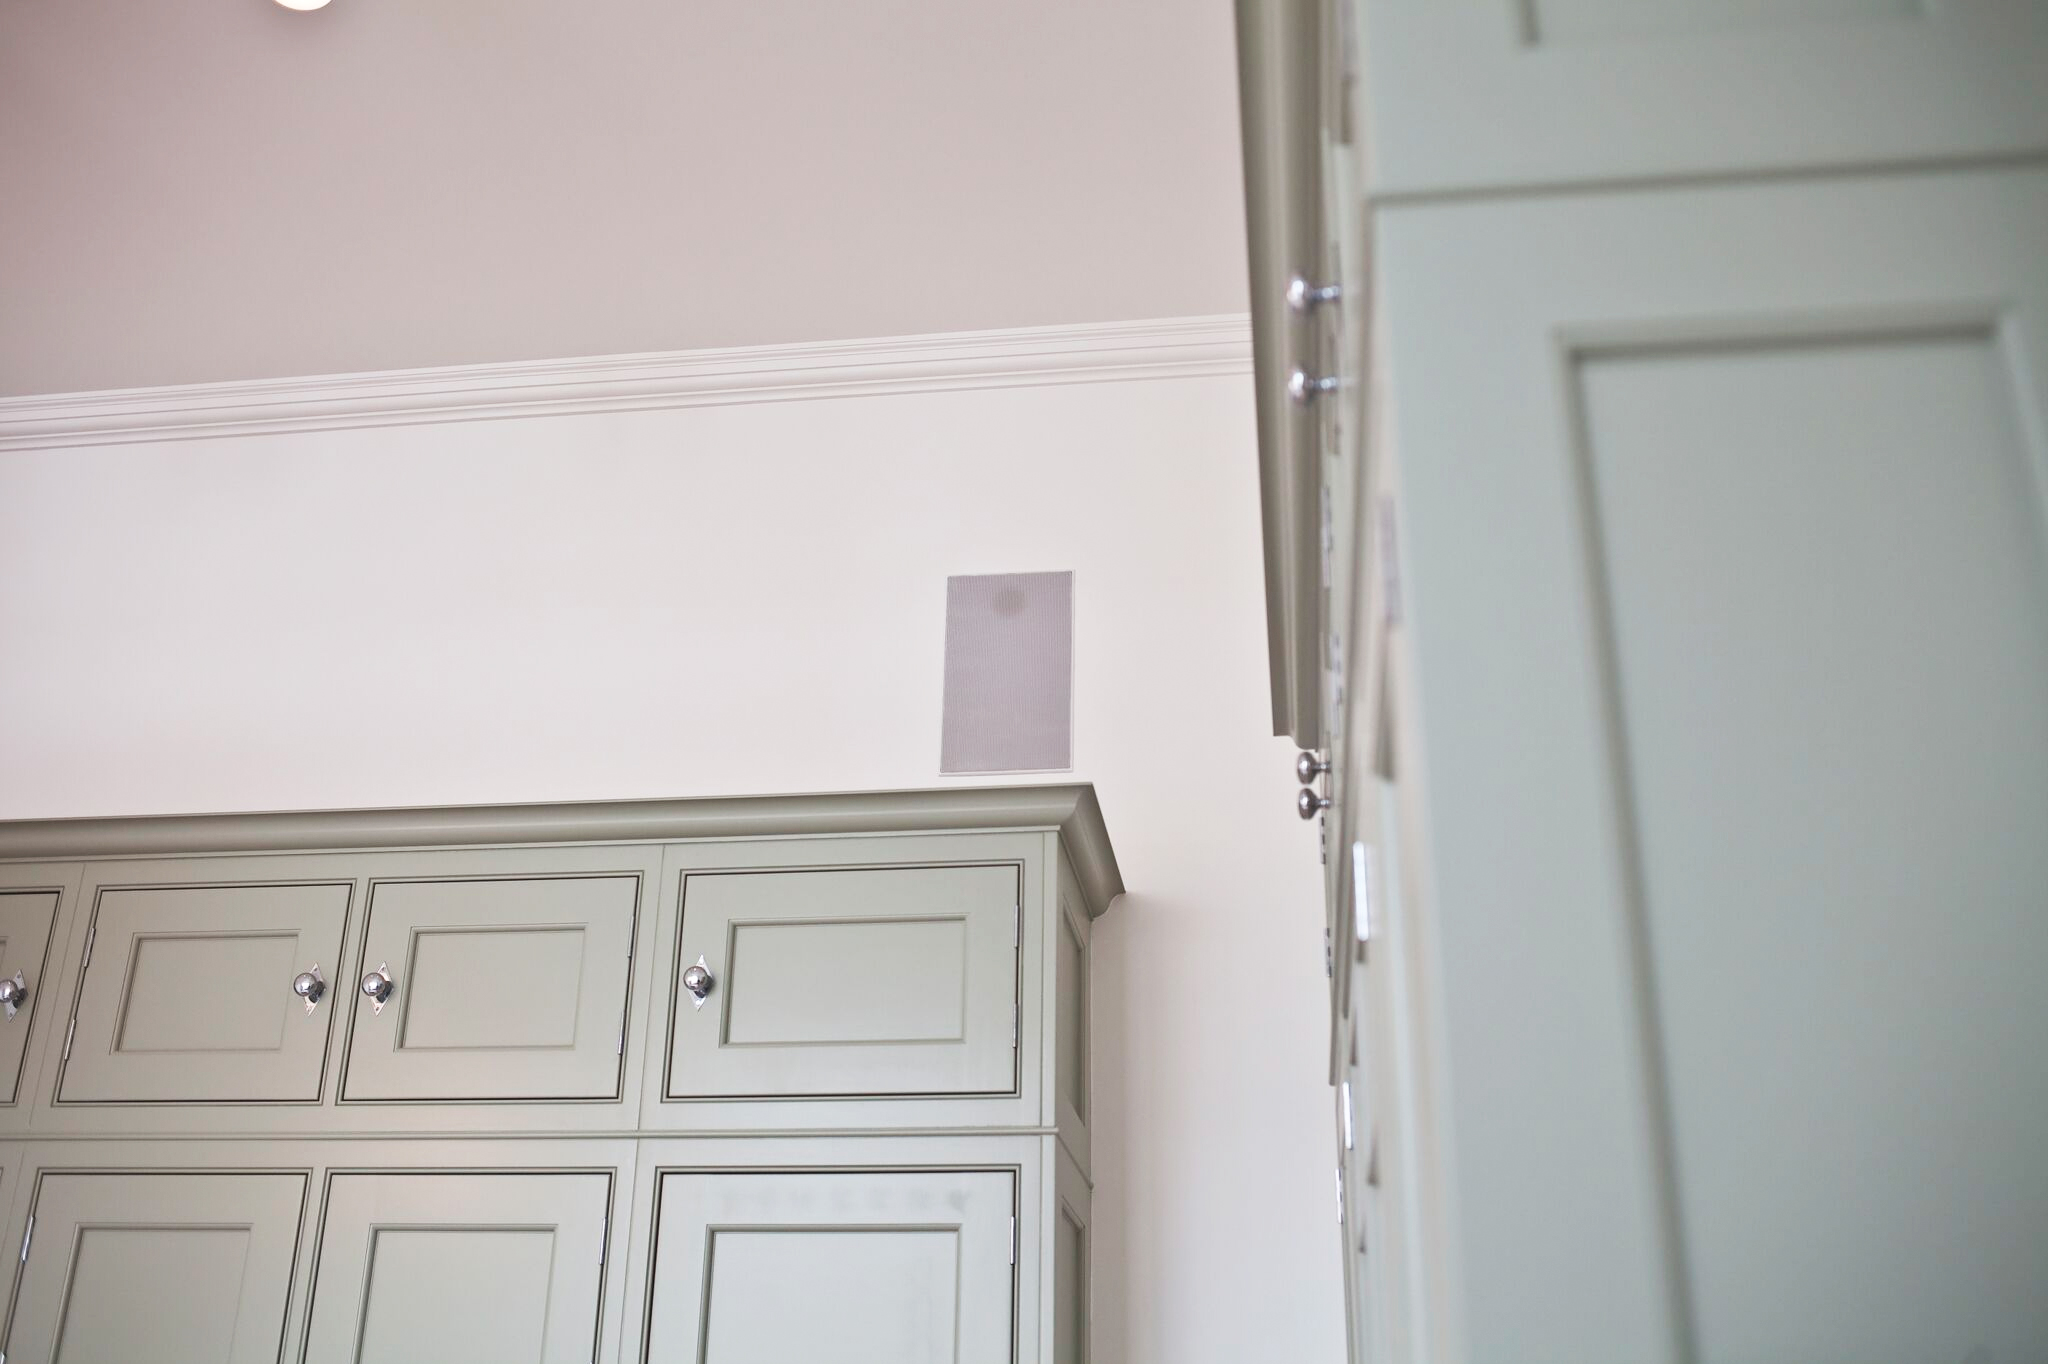 Wardrobe opening to reveal system